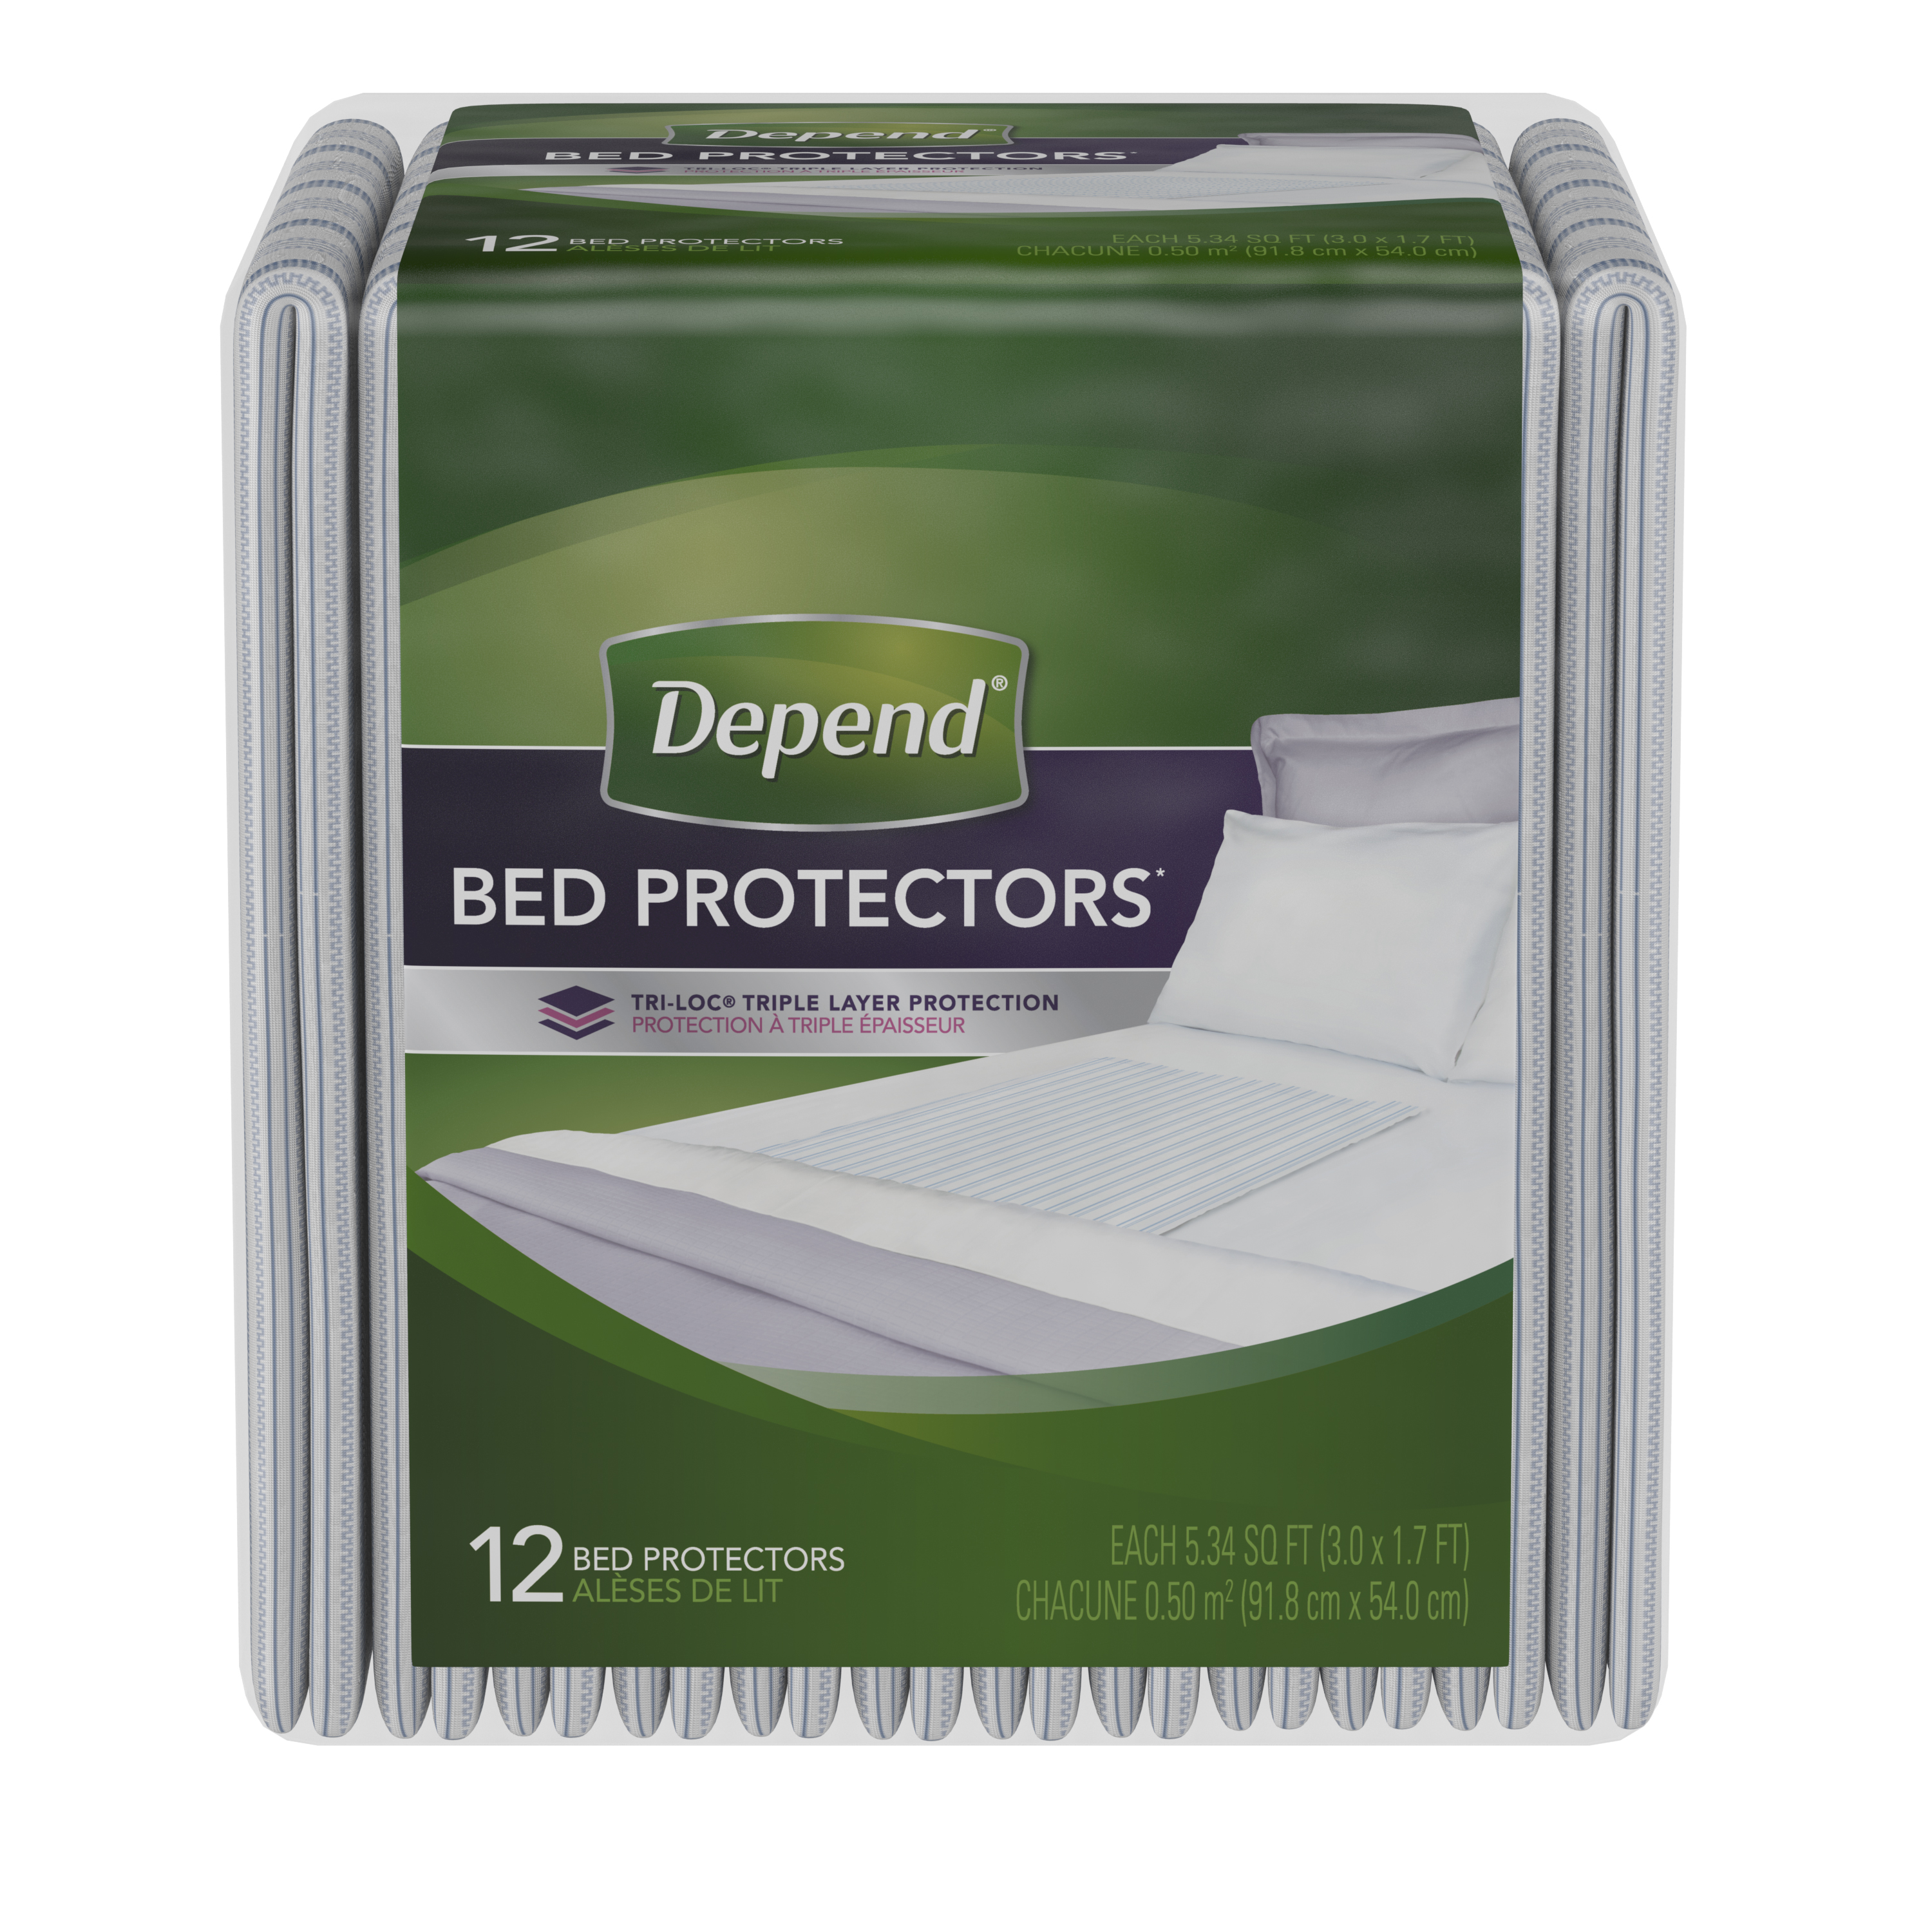 (3 pack) Depend Incontinence Bed Protectors, Disposable Underpad, Overnight Absorbency, 12 Count